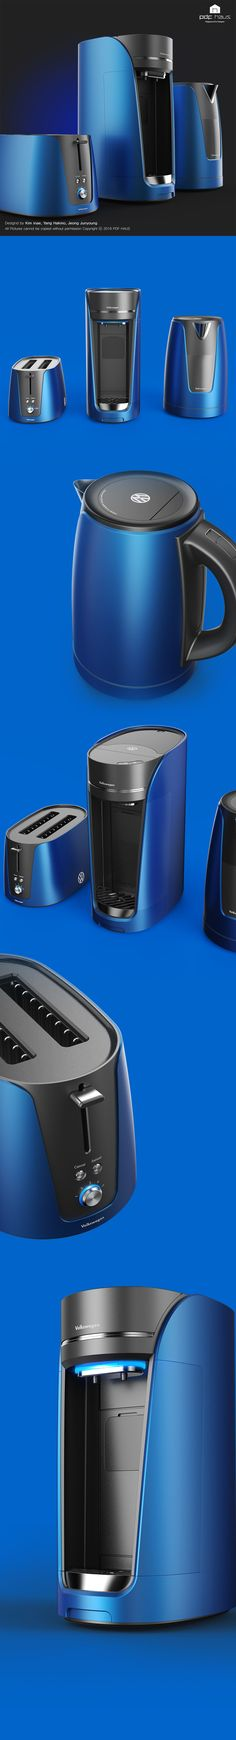 Volkswagen / Kitchen appliance / Product design / Industrial design / 제품디자인 / 산업디자인 / 디자인교육_PDF HAUS Design Academy